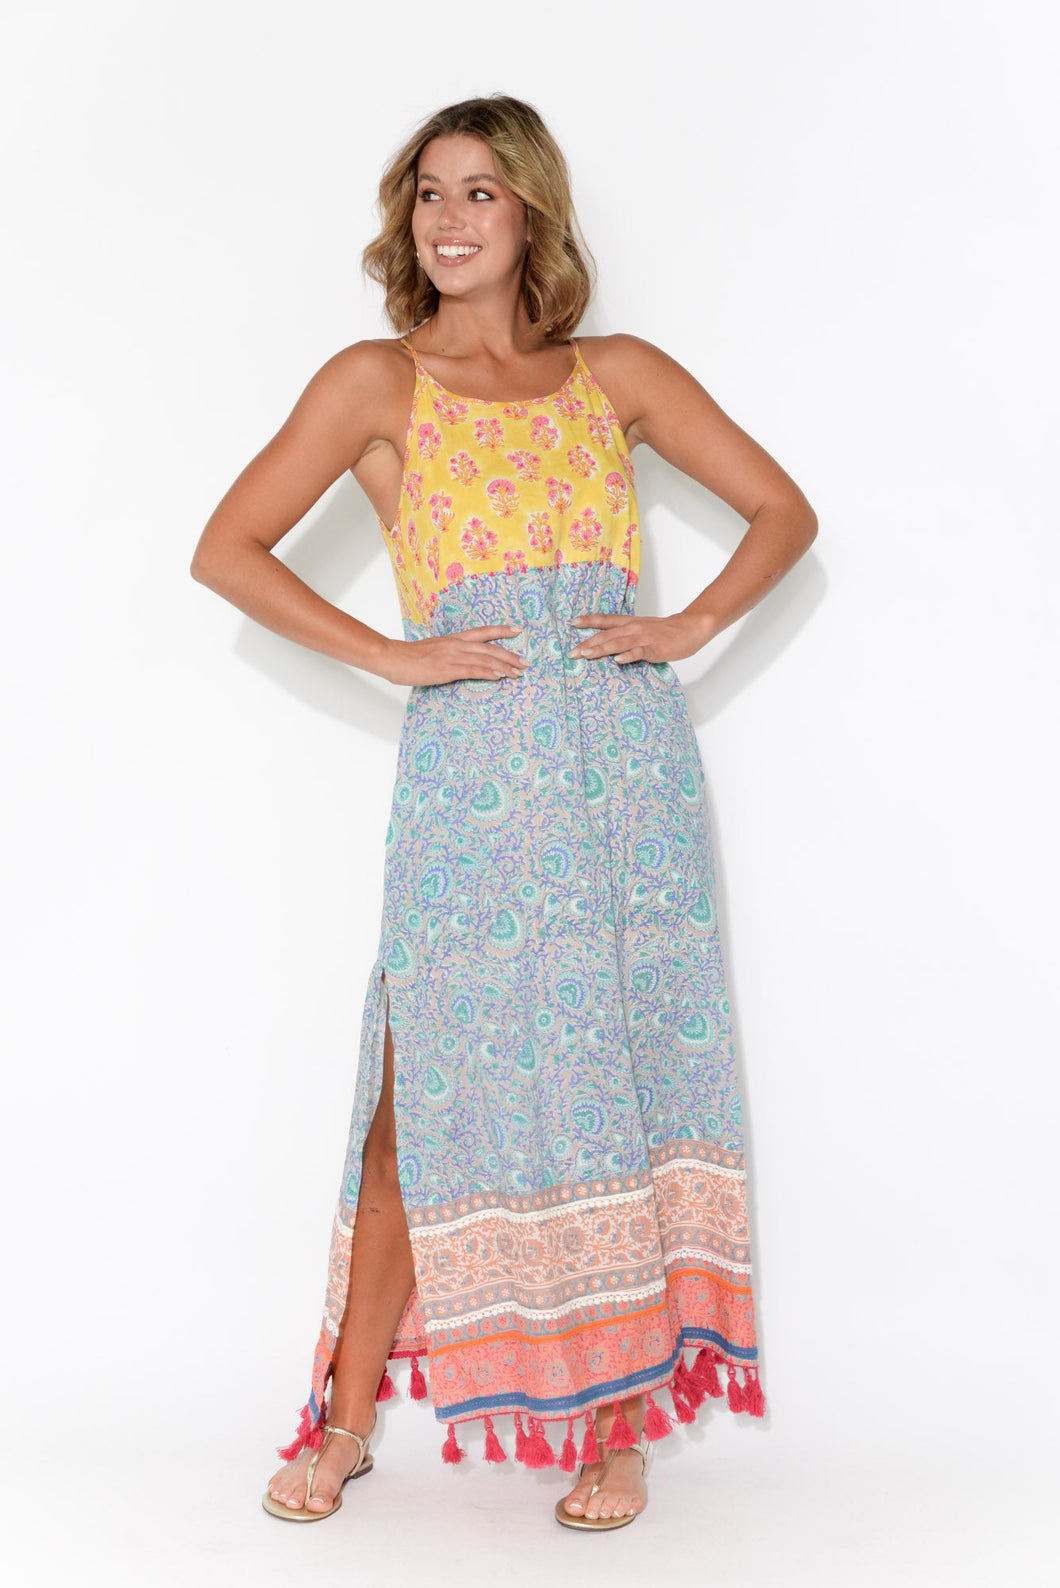 Claudia Yellow and Blue Paisley Sleeveless Dress